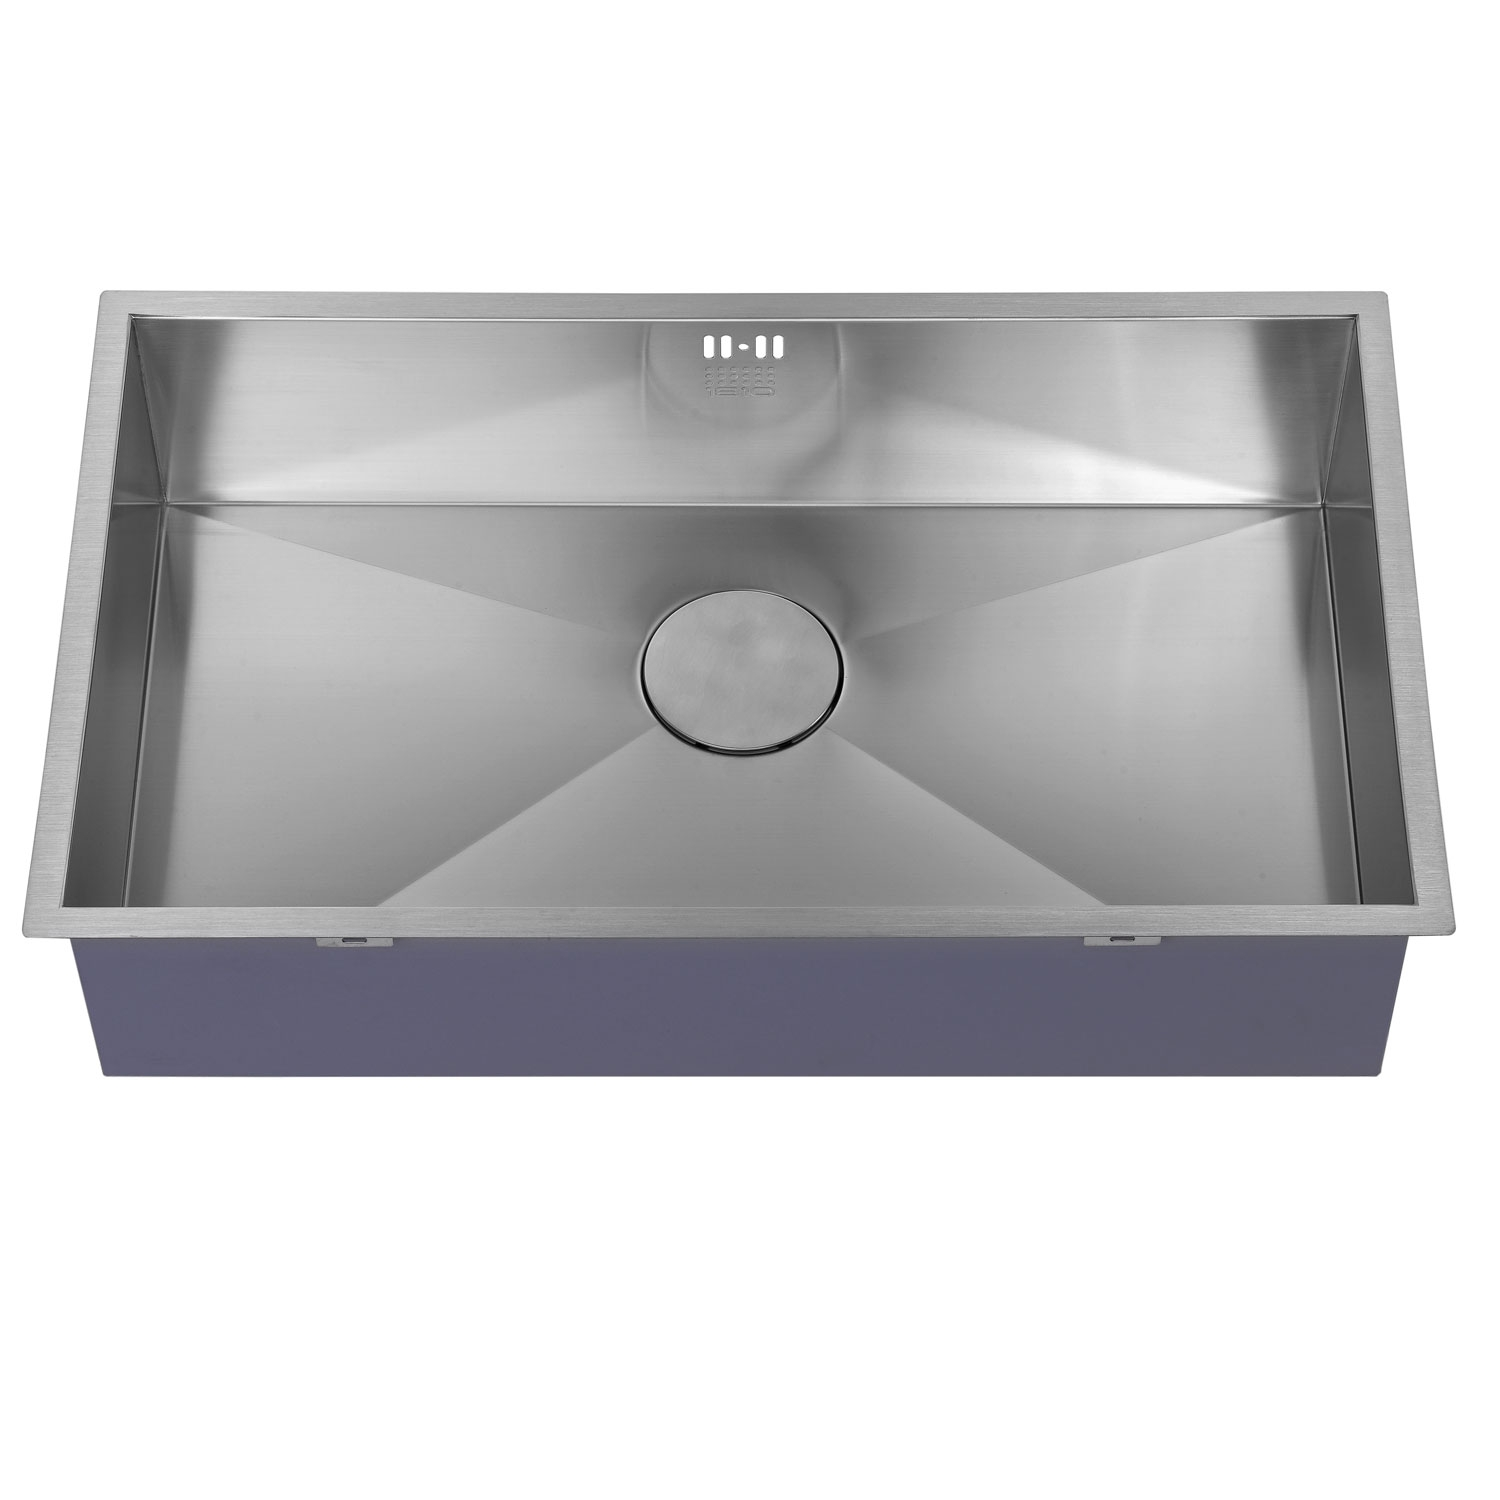 The 1810 Company Zenuno 700U 1.0 Bowl Kitchen Sink - Stainless Steel-1